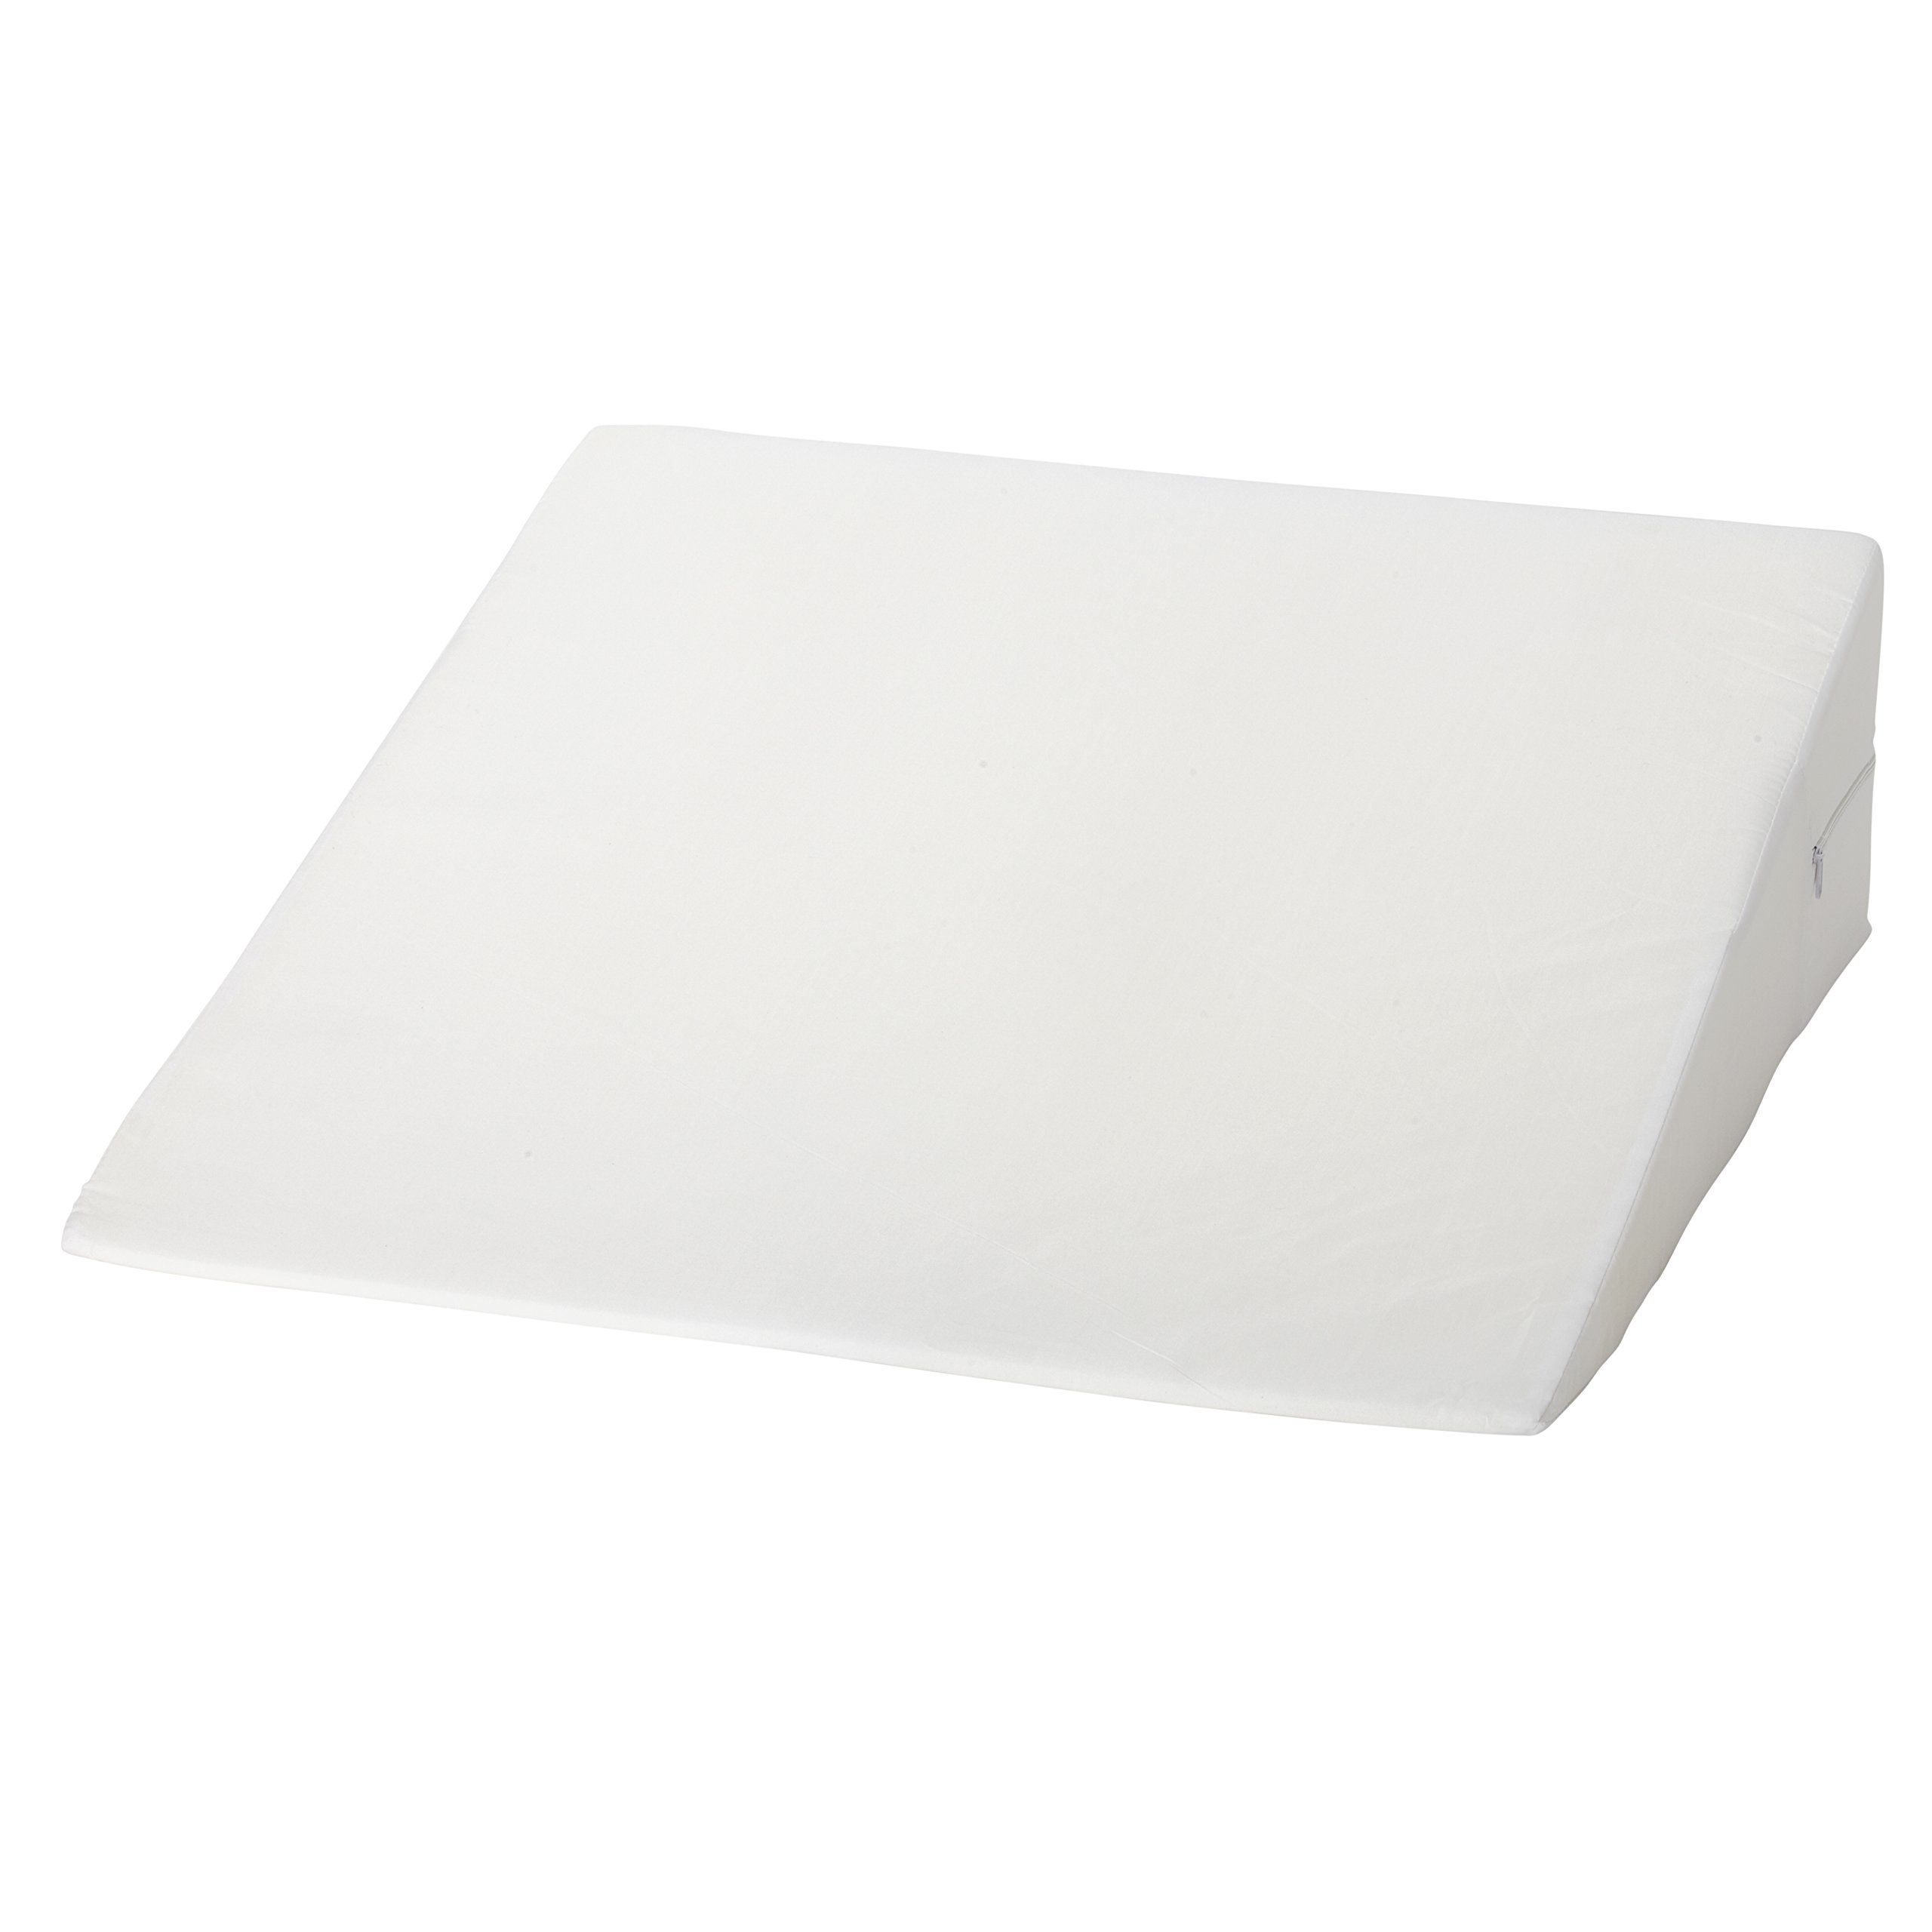 DMI Foam Bed Wedge Pillow, Acid Reflux PIllow, Leg Elevation Pillow, White, 7 x 24 x 24 inches by Mabis (Image #9)